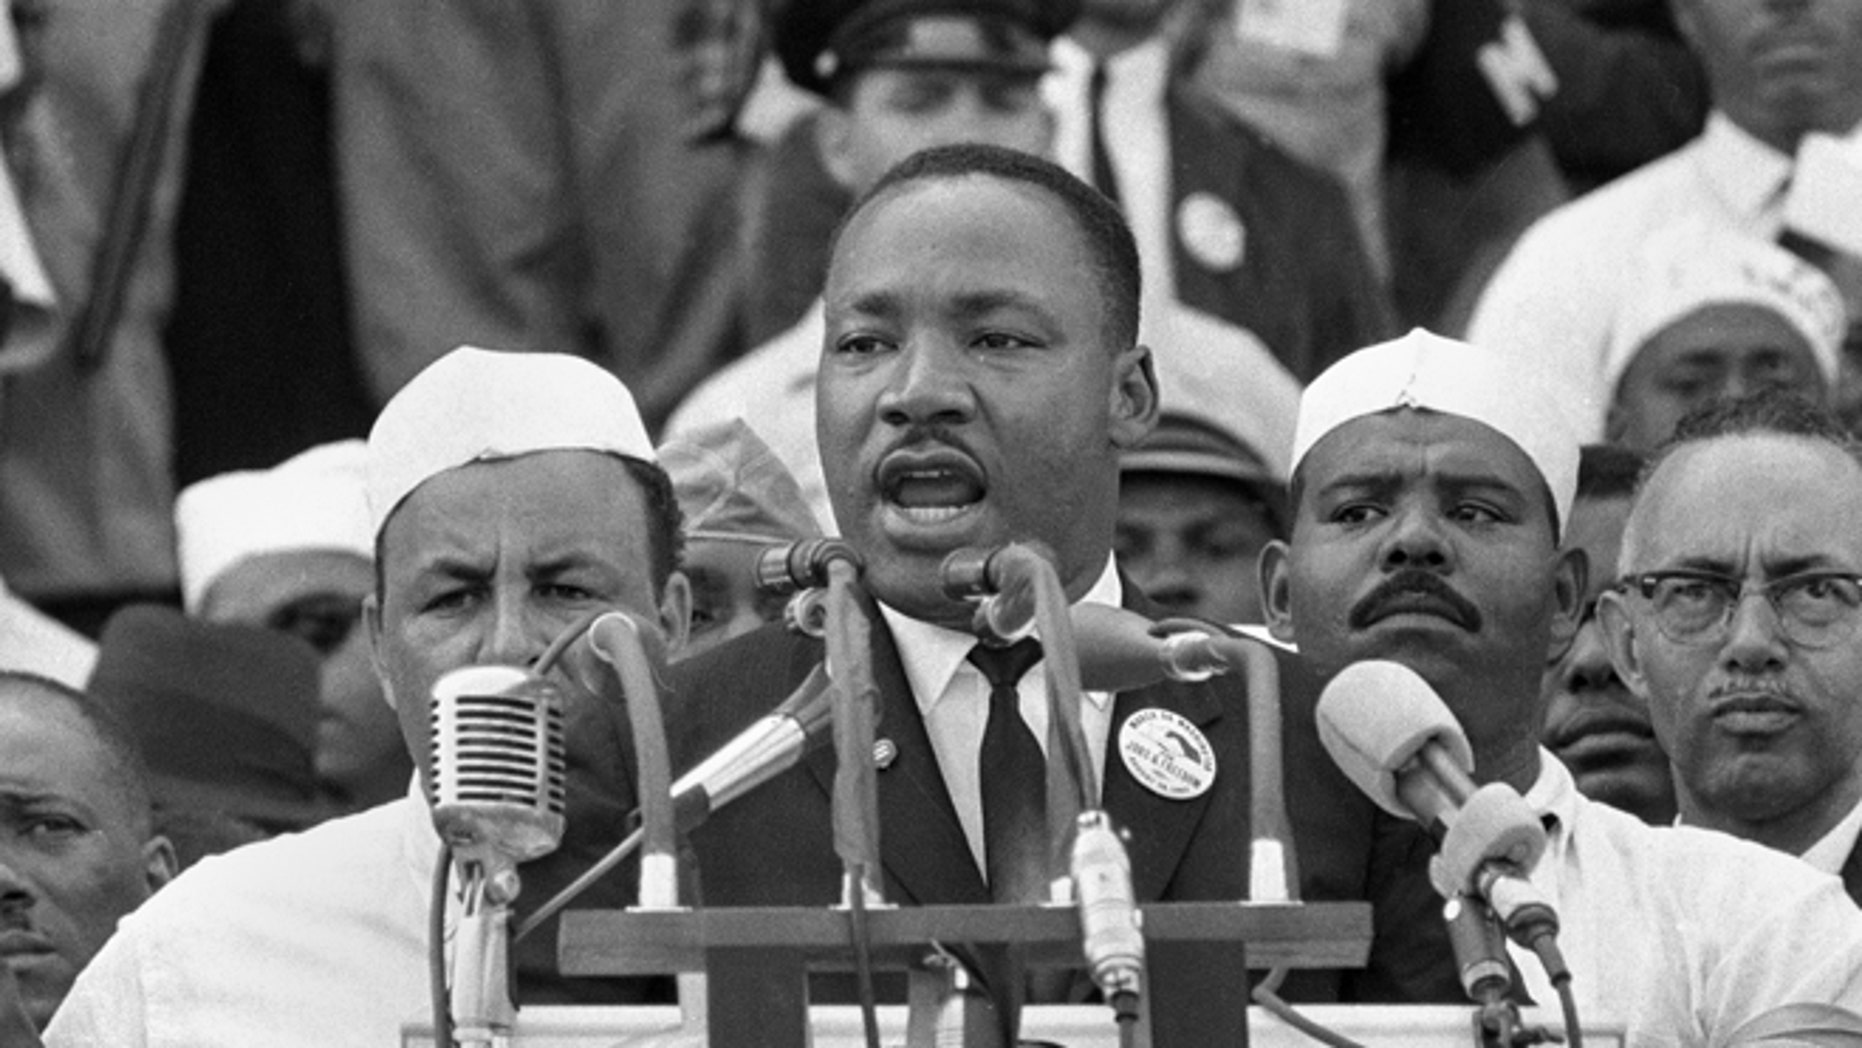 Westlake Legal Group 7553ab04-MLK-ON-MARCH-ON-WASHINGTON This Day in History: Aug. 28 fox-news/us/this-day-in-history fox news fnc/us fnc article a0d36cb4-00f2-5d99-a50a-43029cefcf49